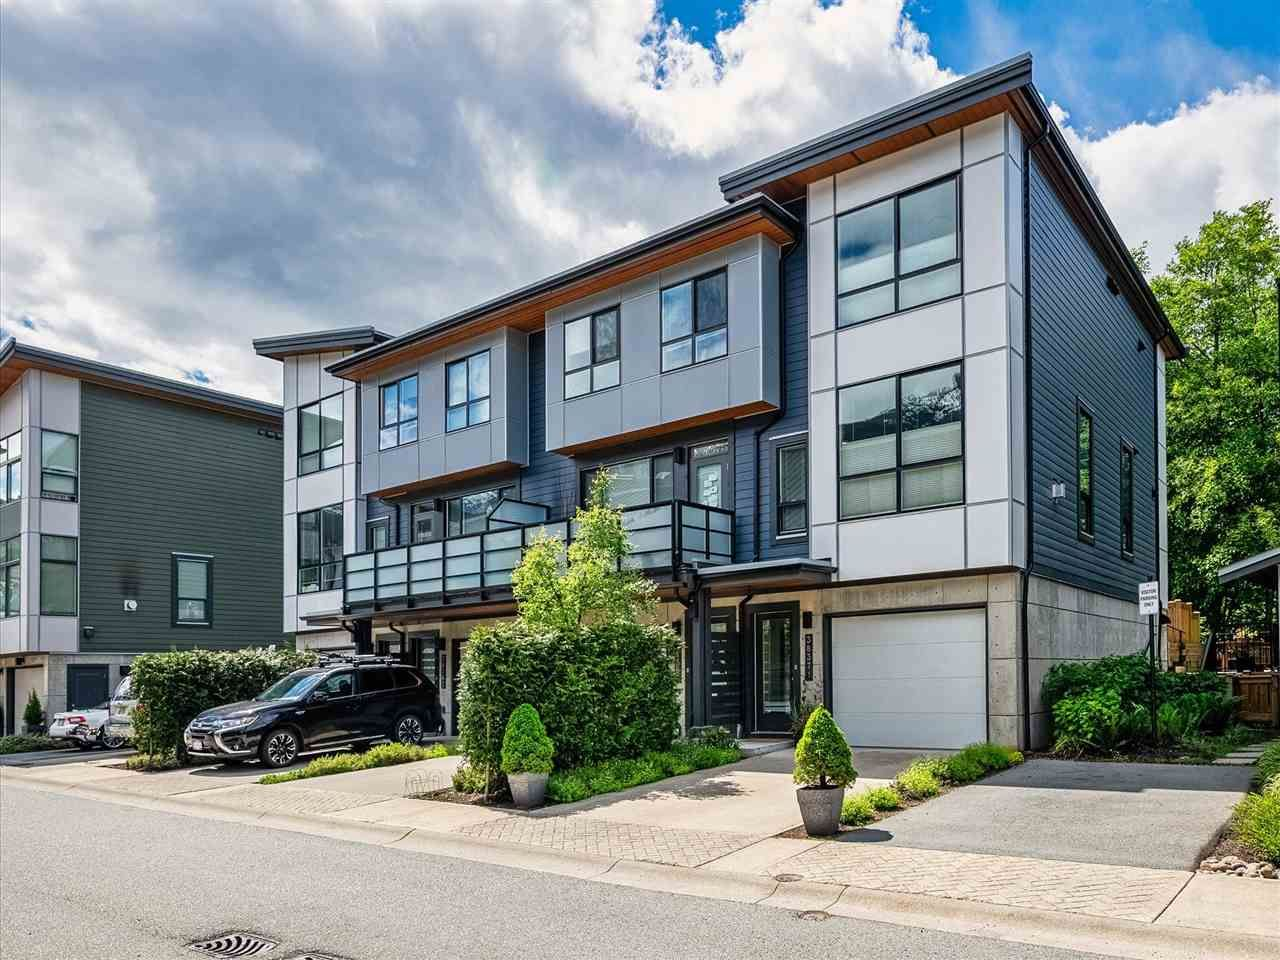 """Main Photo: 38371 SUMMITS VIEW Drive in Squamish: Downtown SQ Townhouse for sale in """"THE FALLS AT EAGLEWIND"""" : MLS®# R2587853"""